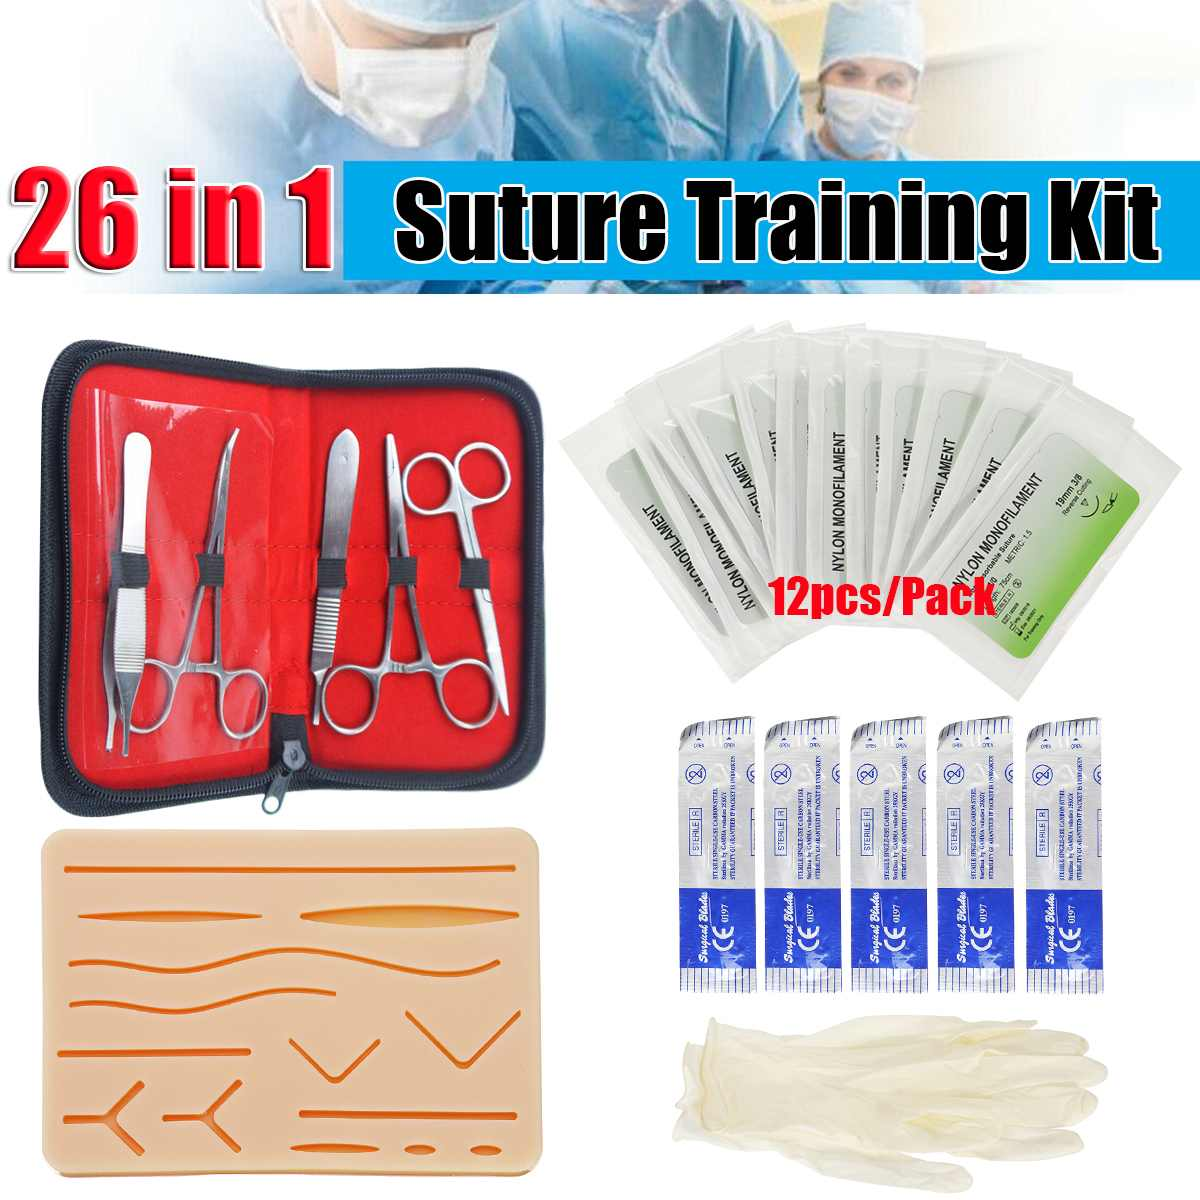 KICUTE 26 In 1 Medical Skin Suture Surgical Training Kit Silicone Pad Needle Scissors Silicone+Stainless Steel Teaching Resource